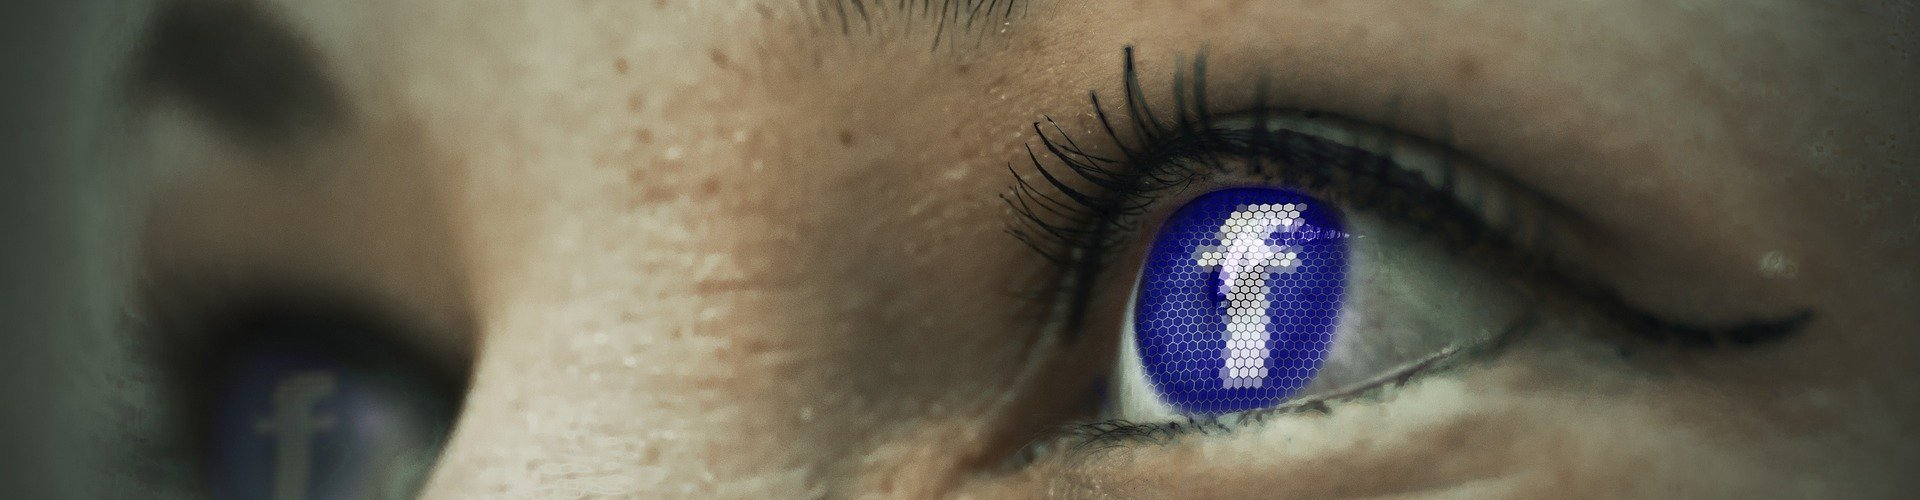 close up of woman's eyes with facebook icon reflected in on eye